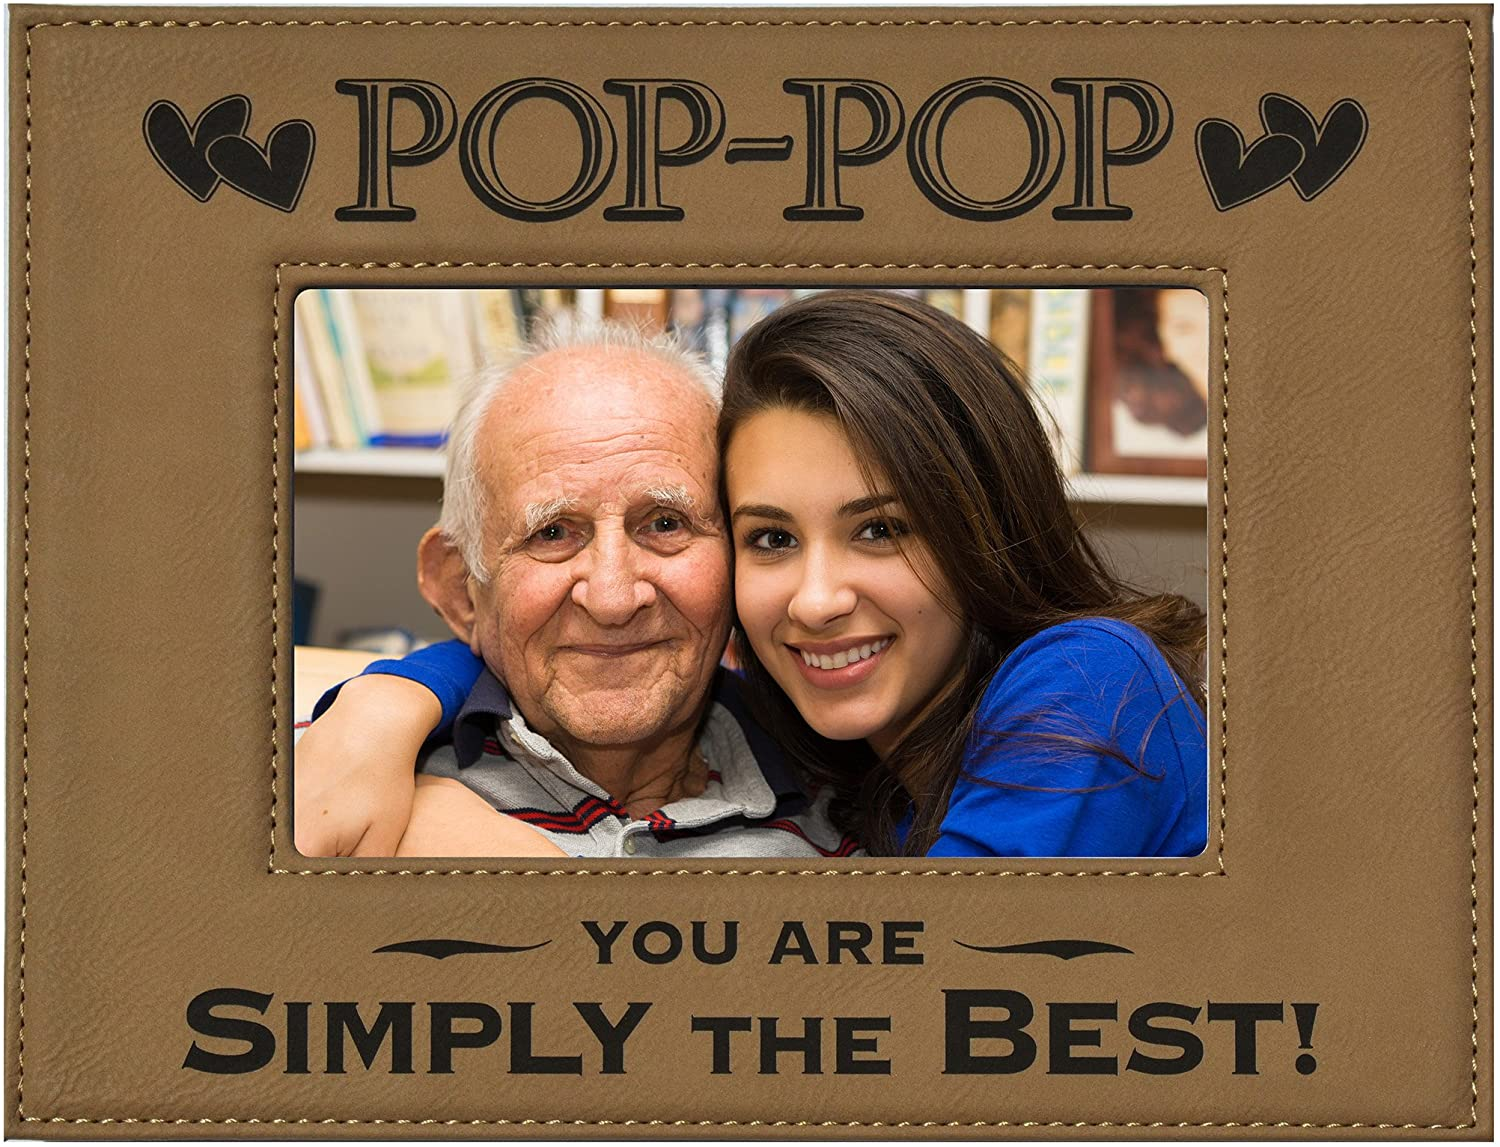 GK Grand Personal-Touch Premium Creations POP-POP You are Simply The Best! Engraved Leatherette Picture Frame Dad Birthday POP POP Best POP-POP Ever (5x7 Beige)